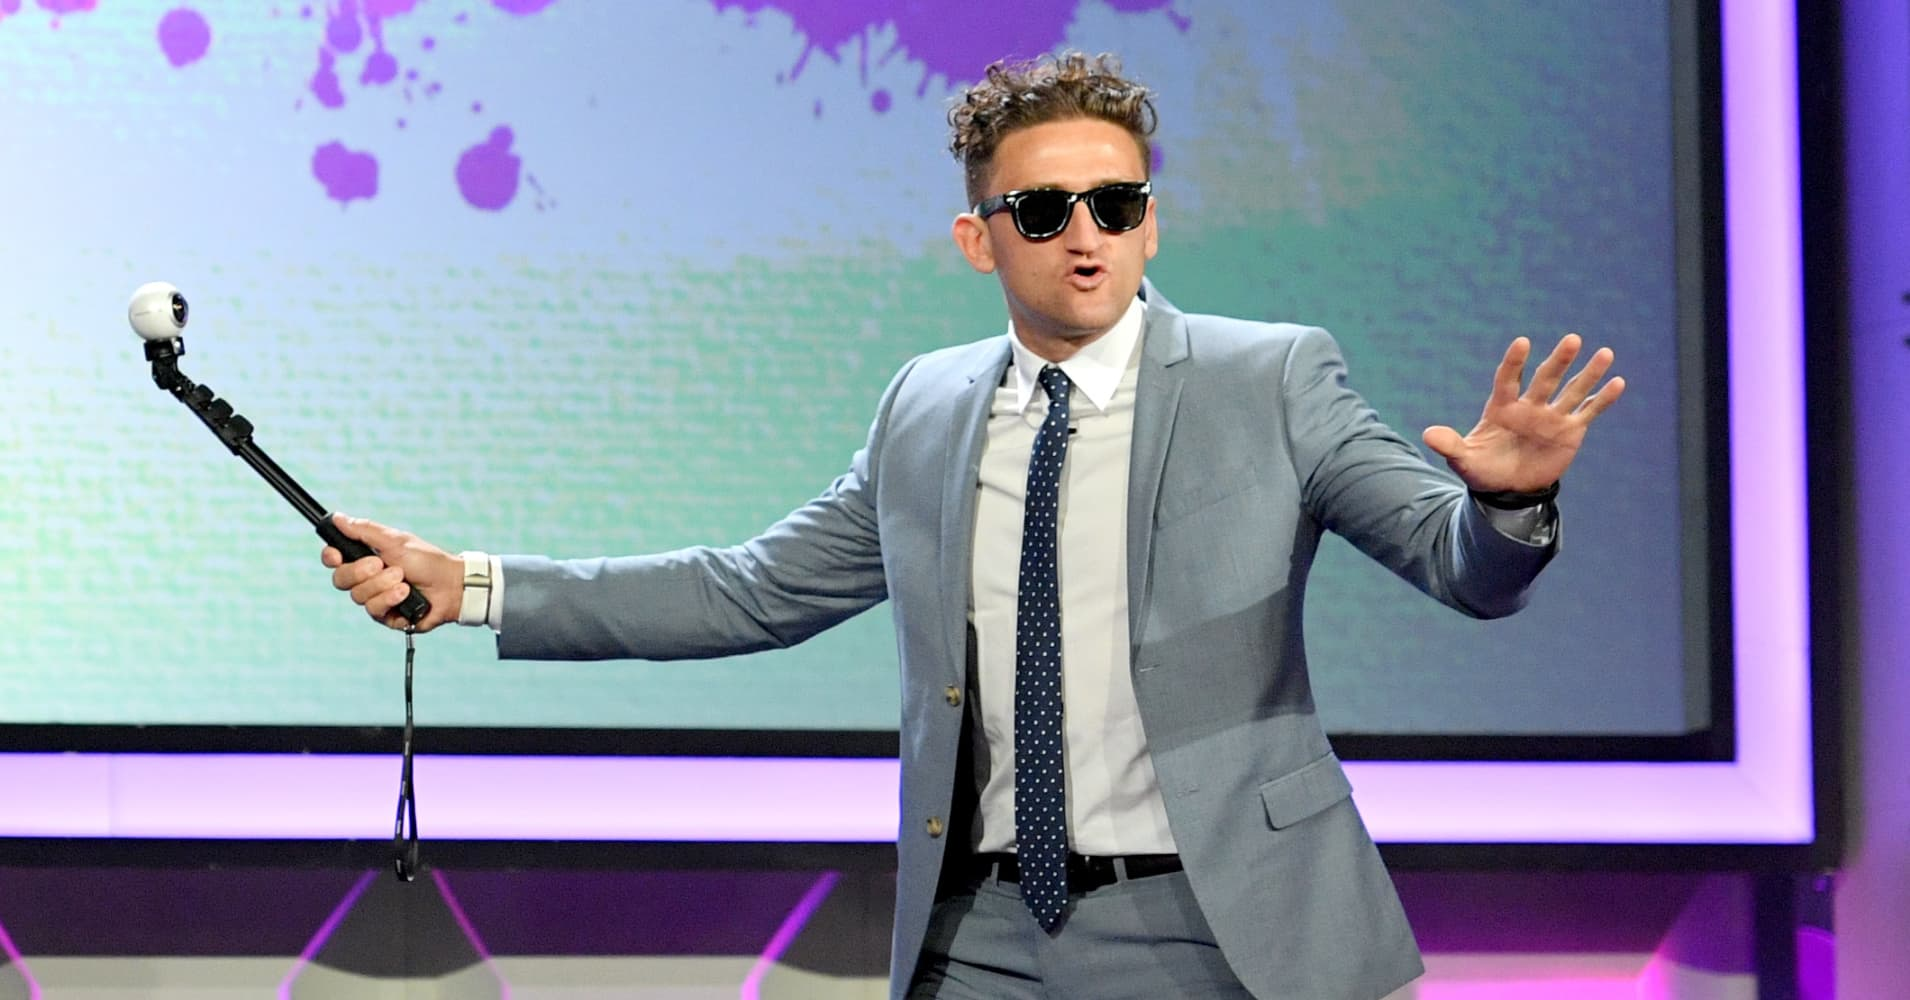 Filmmaker Casey Neistat: You have to think like Tarzan to find success